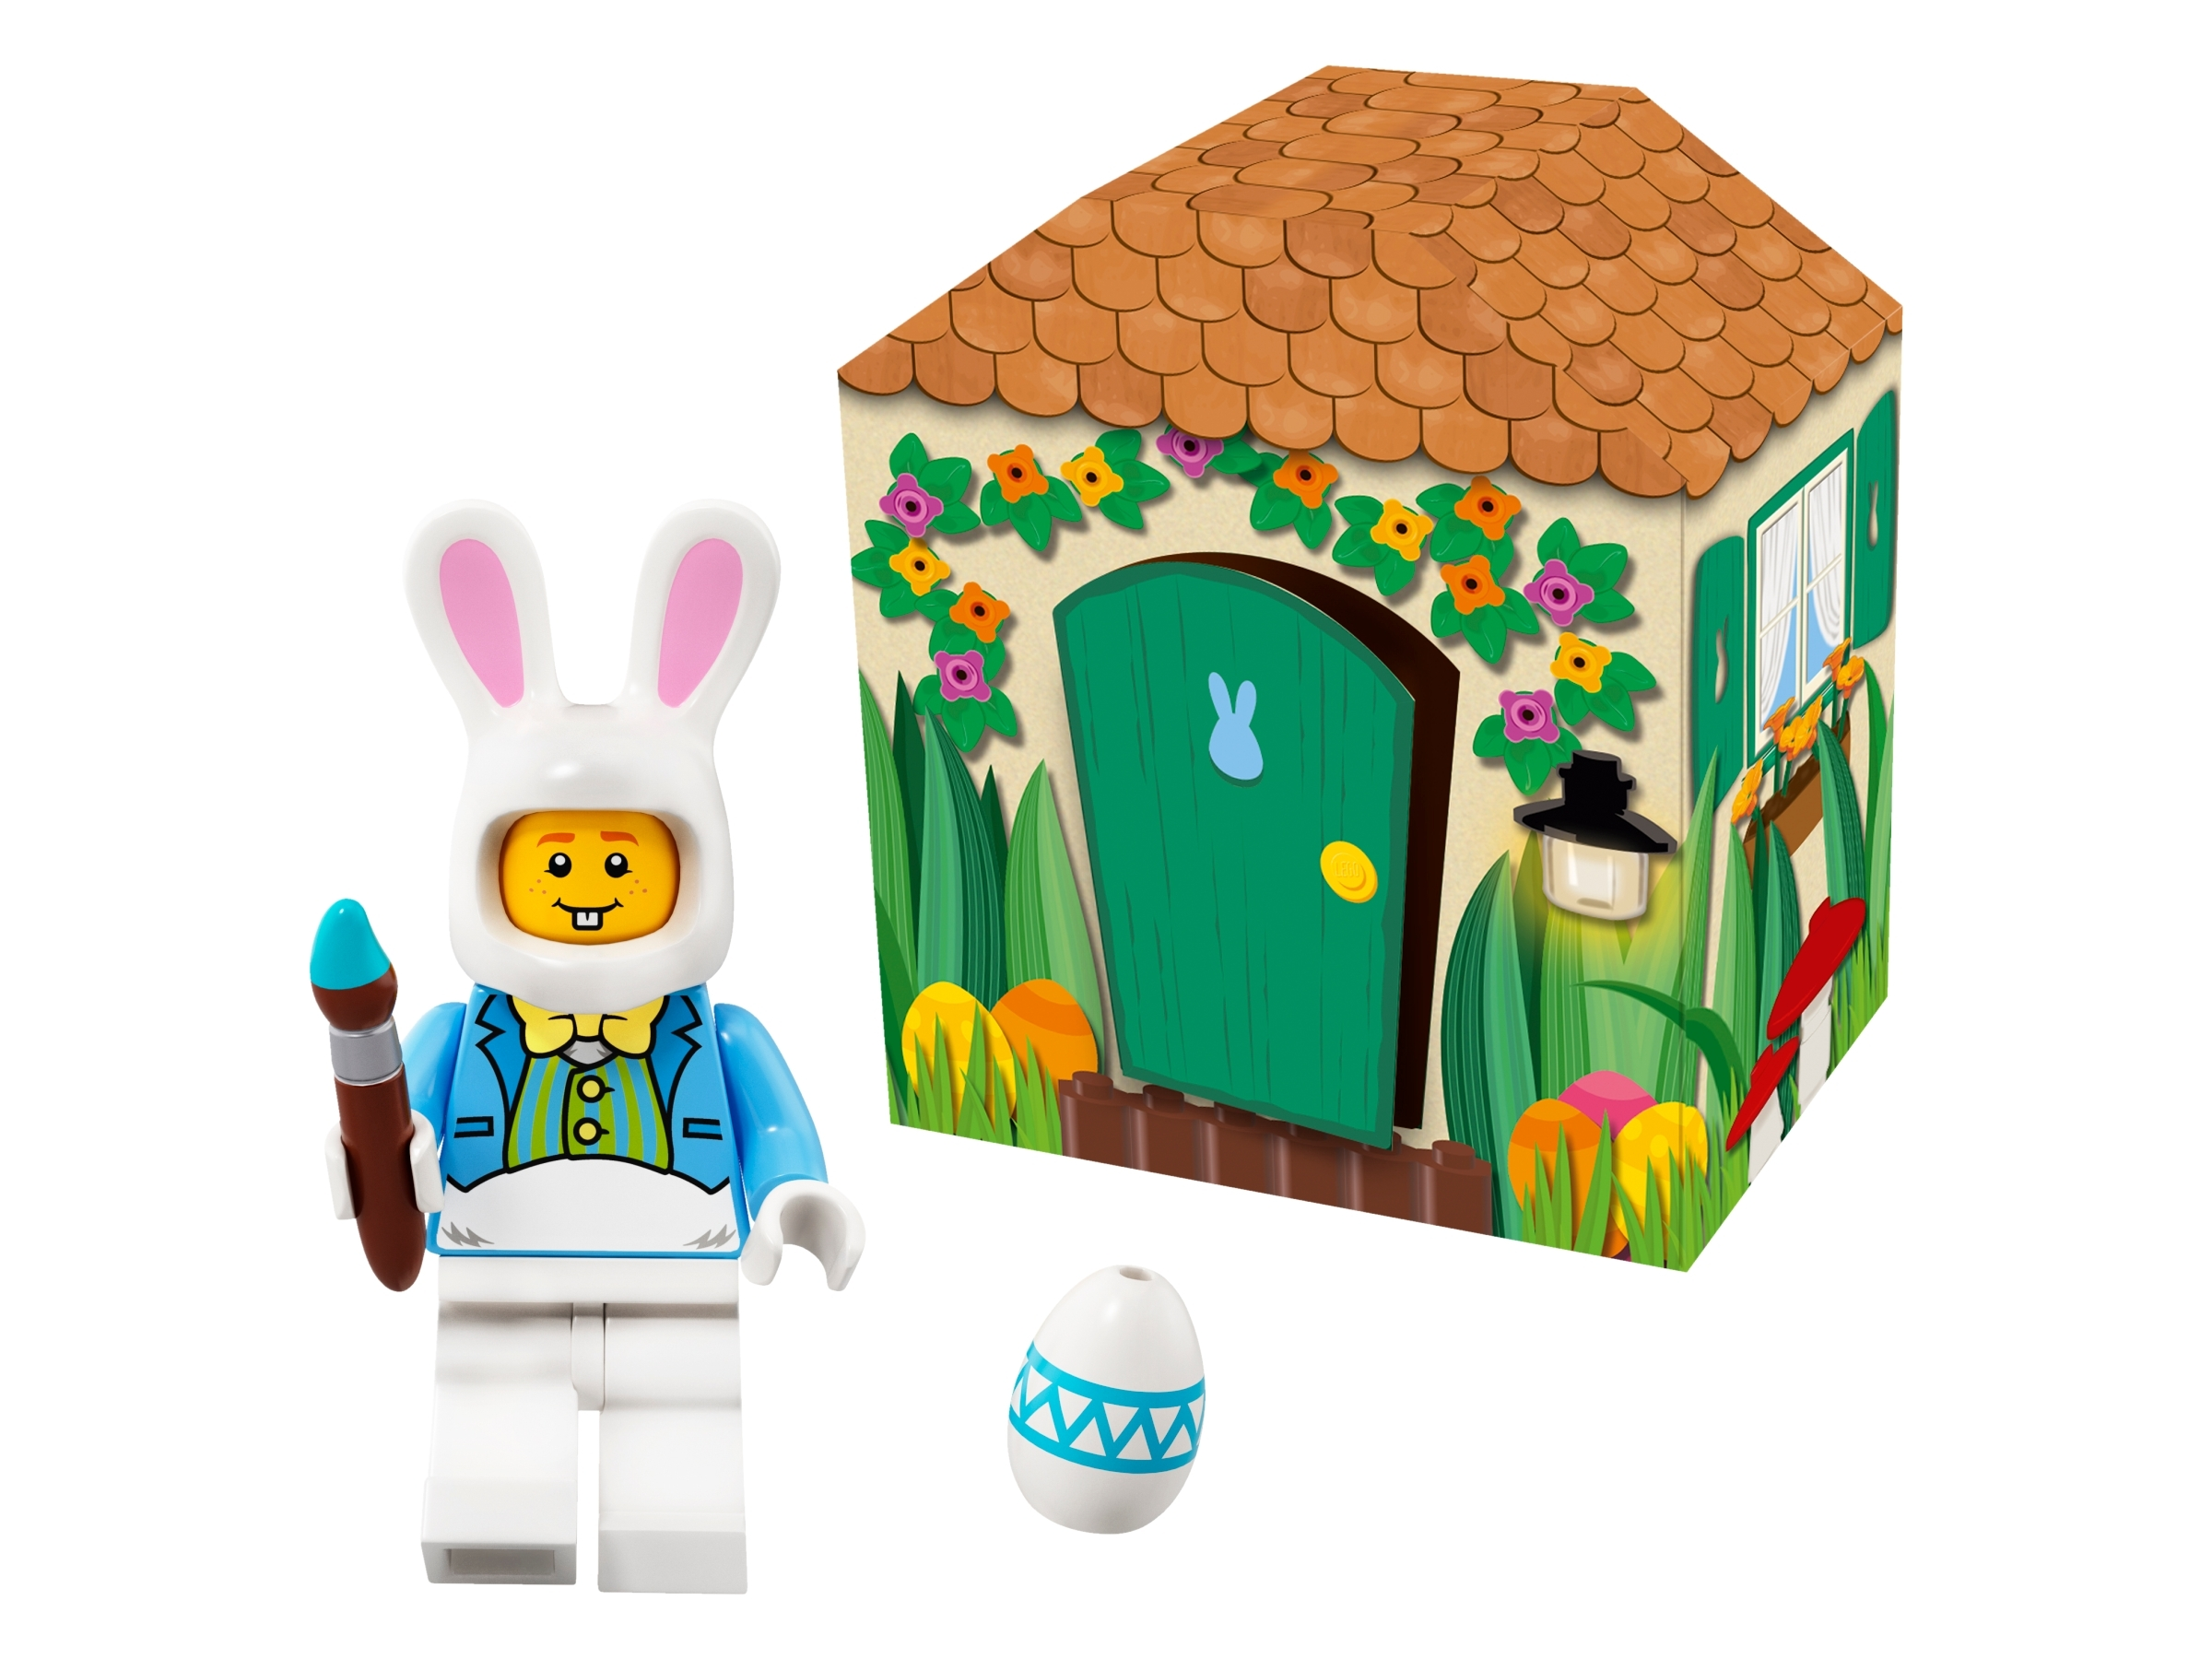 Lego Easter Bunny Minifigure with Paintbrush and Decorated Egg